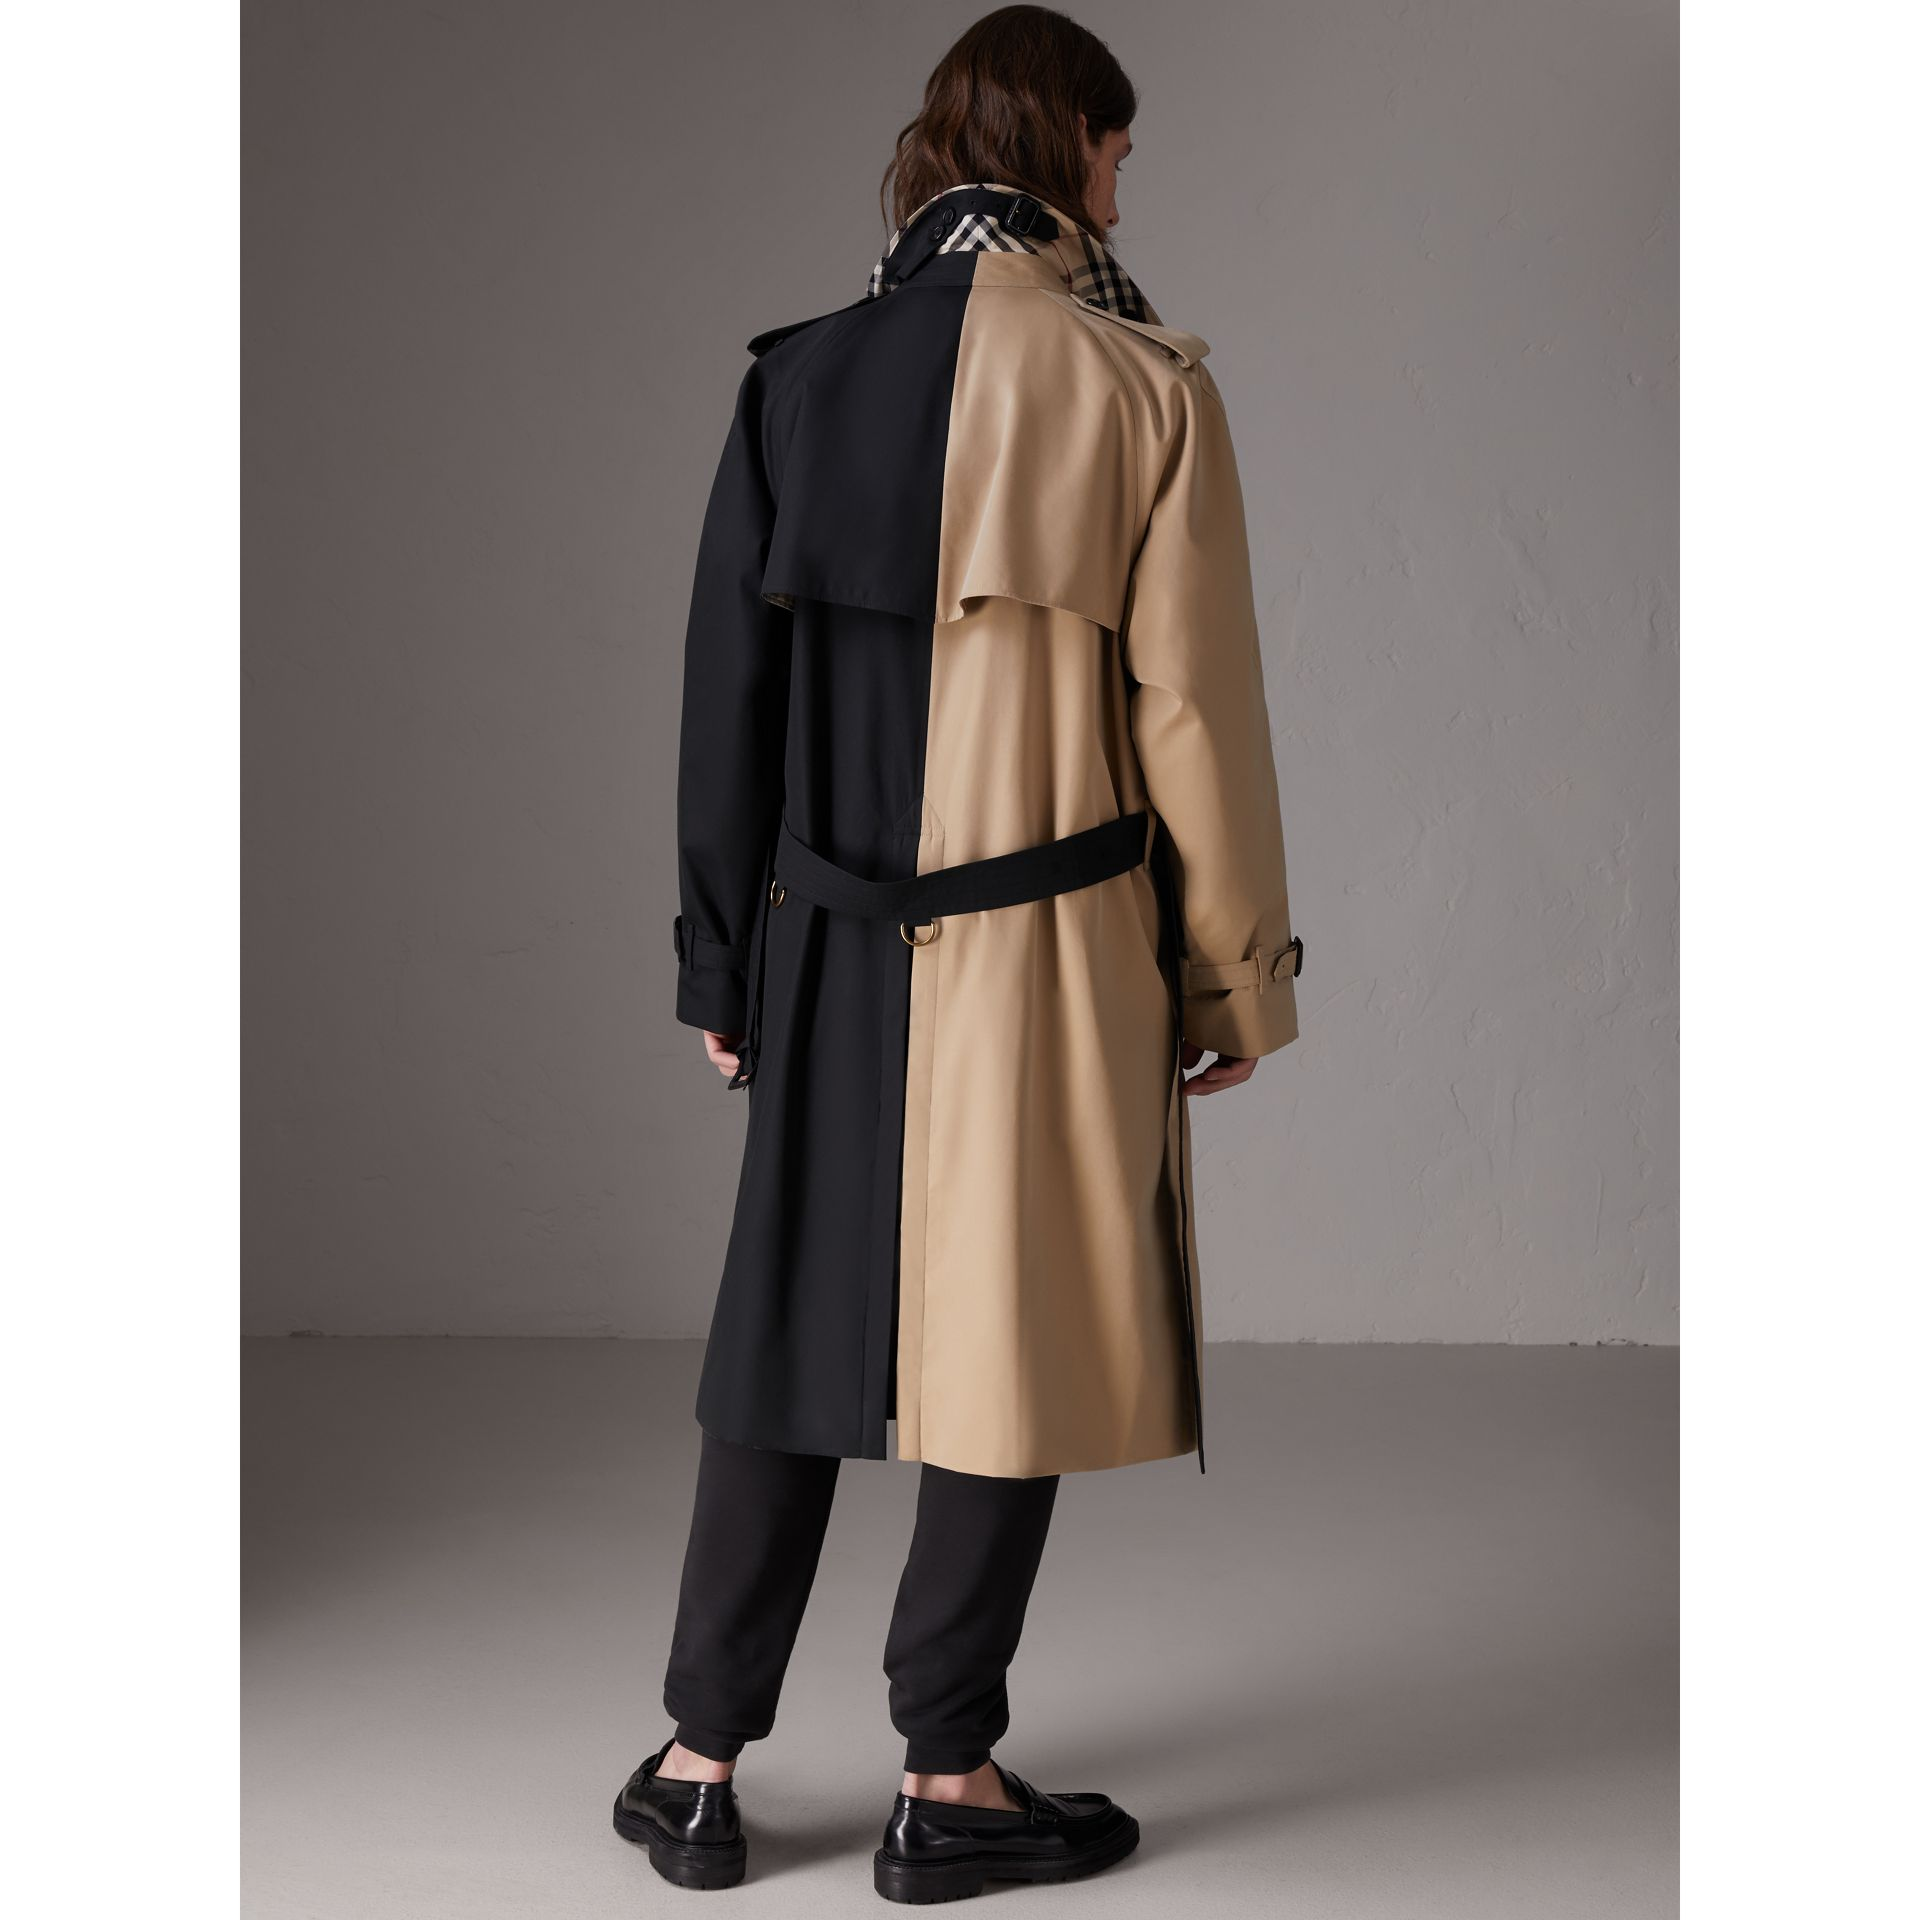 Gosha x Burberry Two-tone Trench Coat in Honey | Burberry - gallery image 2